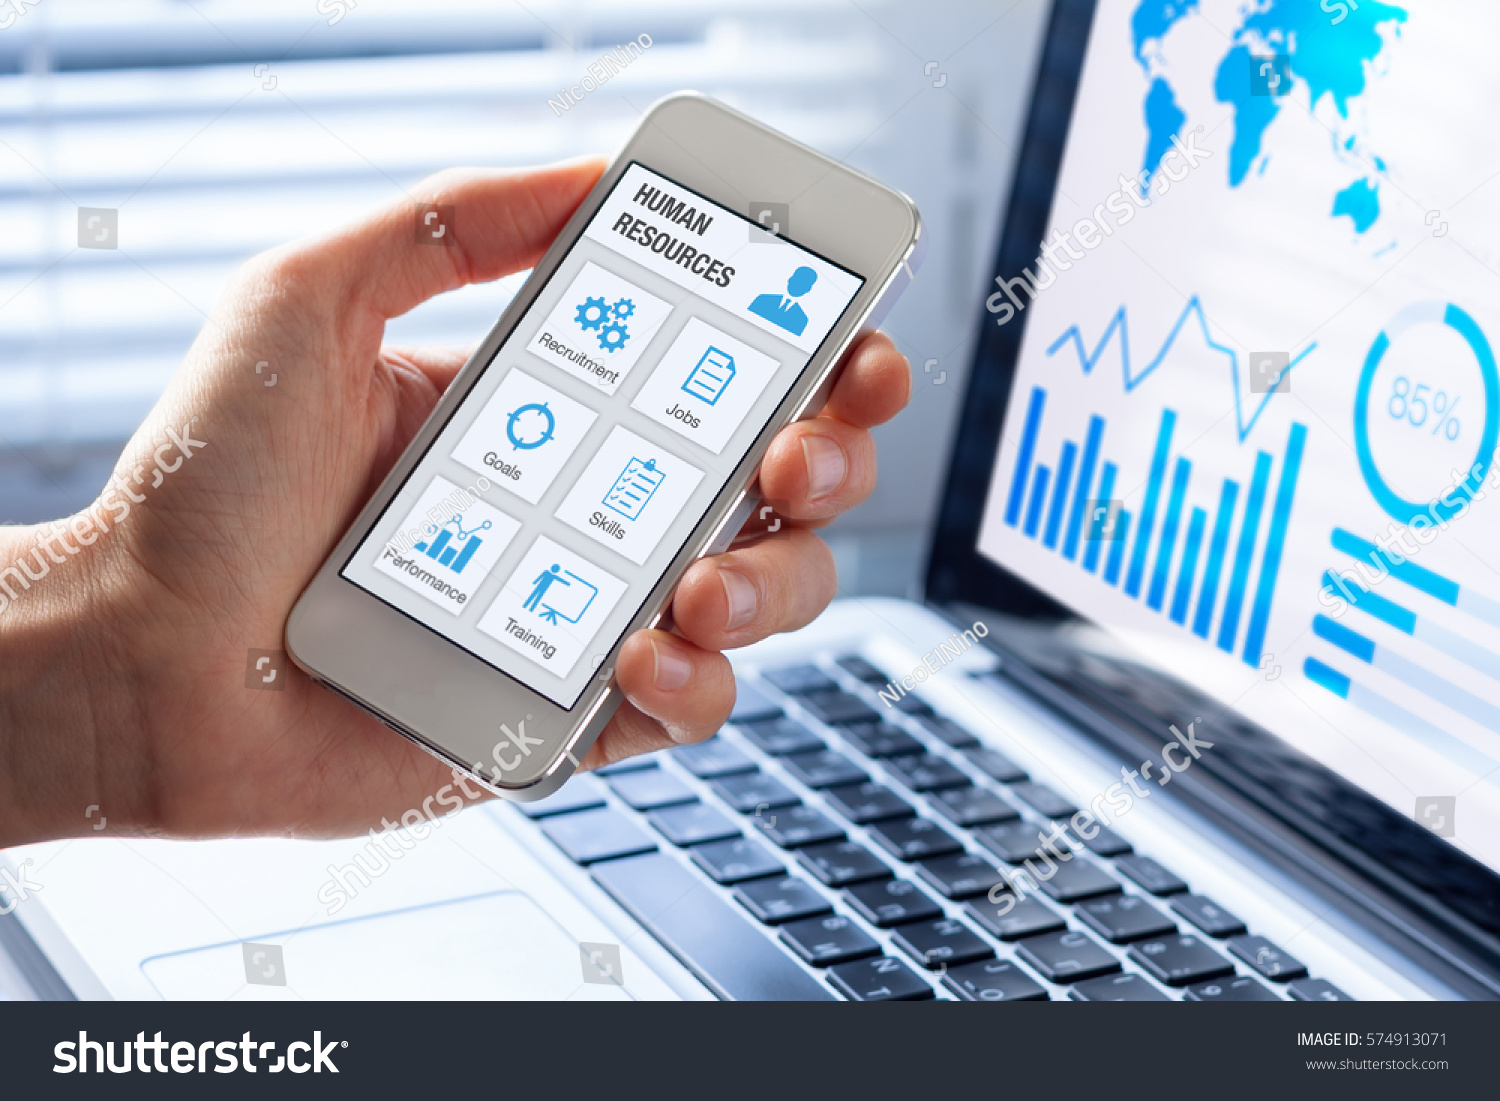 Human Resources Hr Management App Concept Stock Photo. Best Medical Schools In Arizona. American Outsourcing Companies. How To Do Well On The Mcat Best File Sharing. Fully Accredited Online Bachelors Degree Programs. Bachelor Healthcare Management. Application Delivery Controller Magic Quadrant. Colleges That Don T Require Sat. Free Issue Tracking Software Web Based